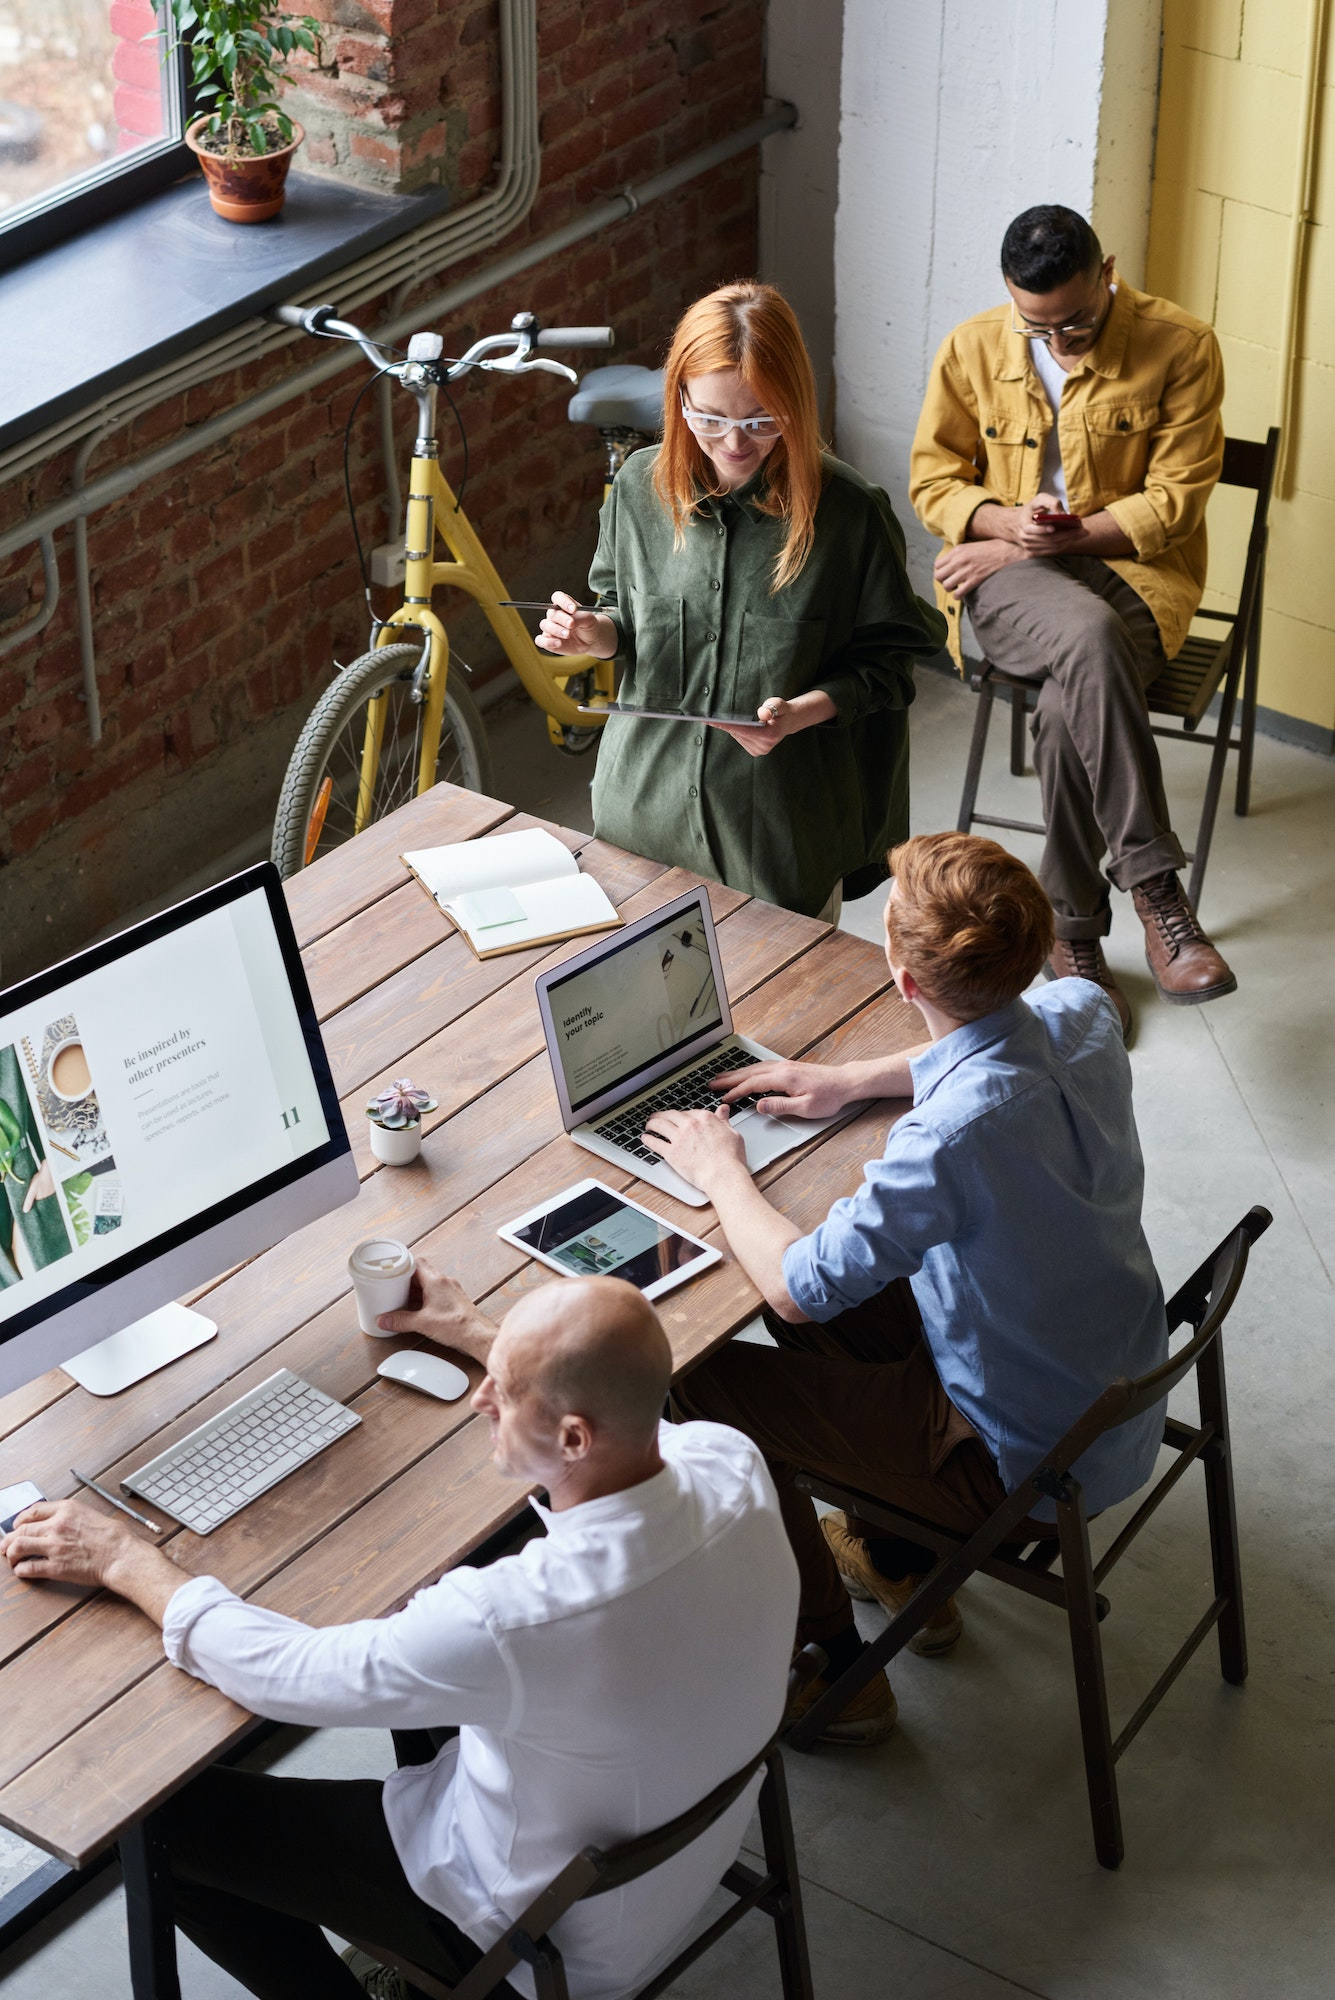 How To Optimize Your Office Space To Its Fullest Potential | Business Tips | Elle Blonde Luxury Lifestyle Destination Blog